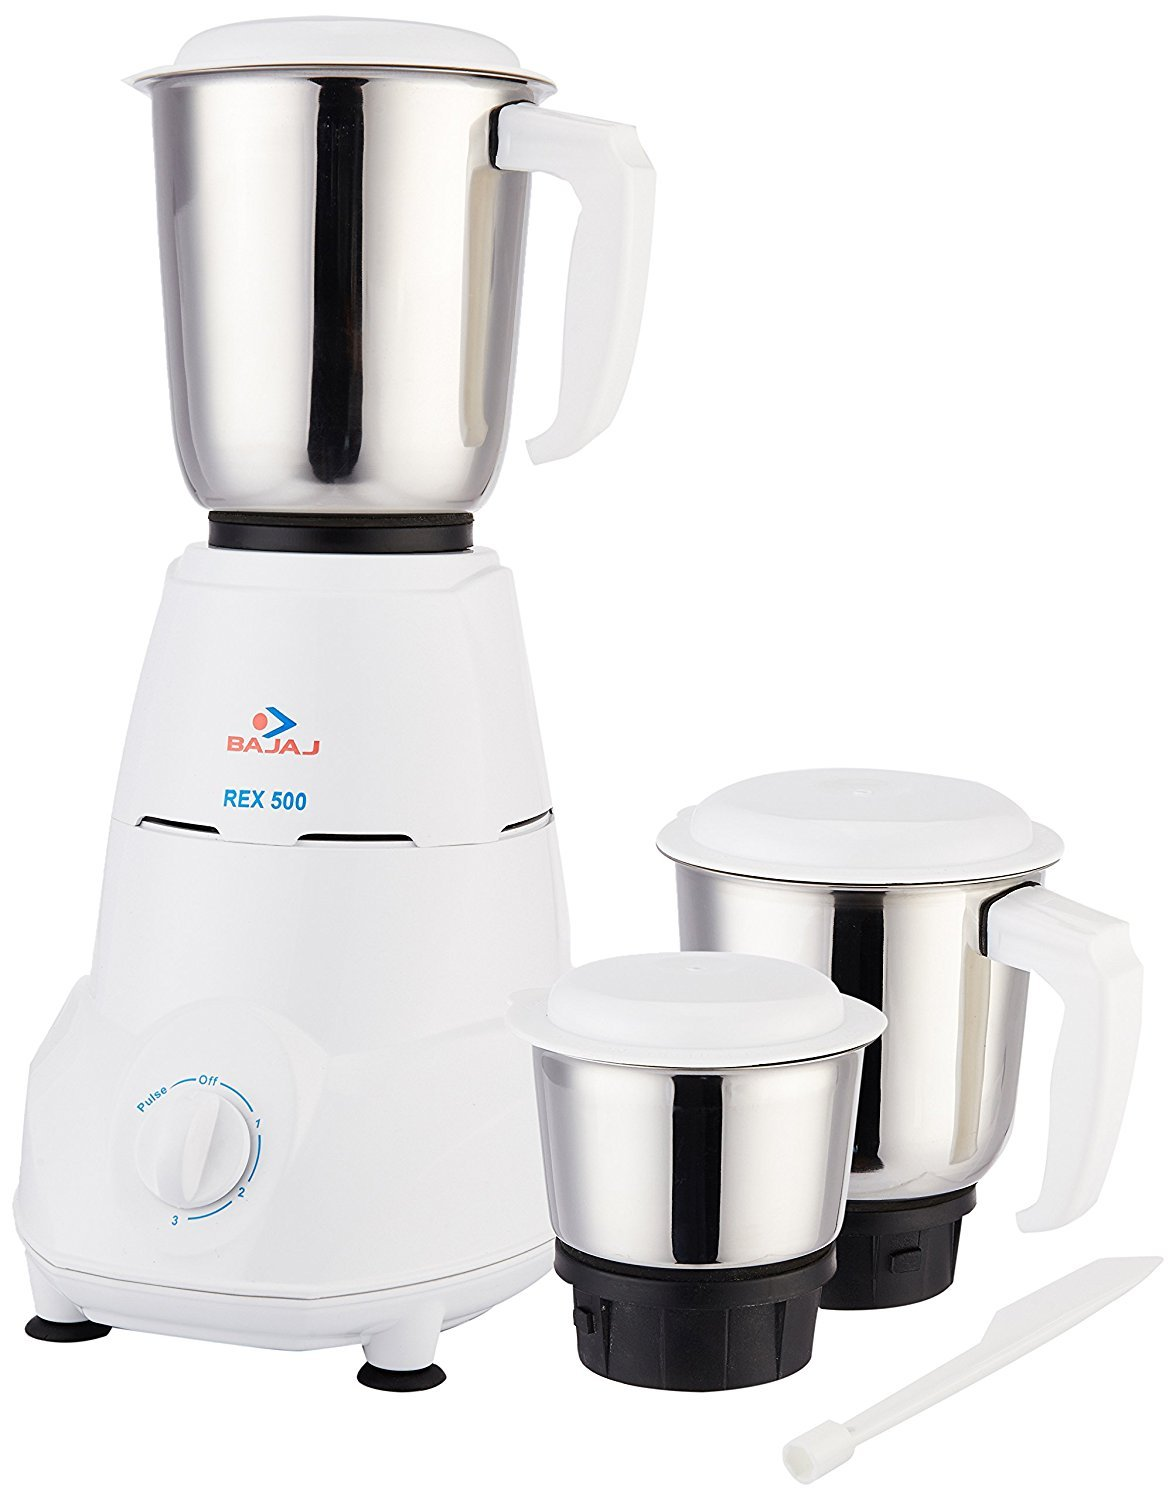 Uncategorized Kitchen Appliances Mixers buy bajaj rex 500 watt mixer grinder with 3 jars white online at low prices in india amazon in